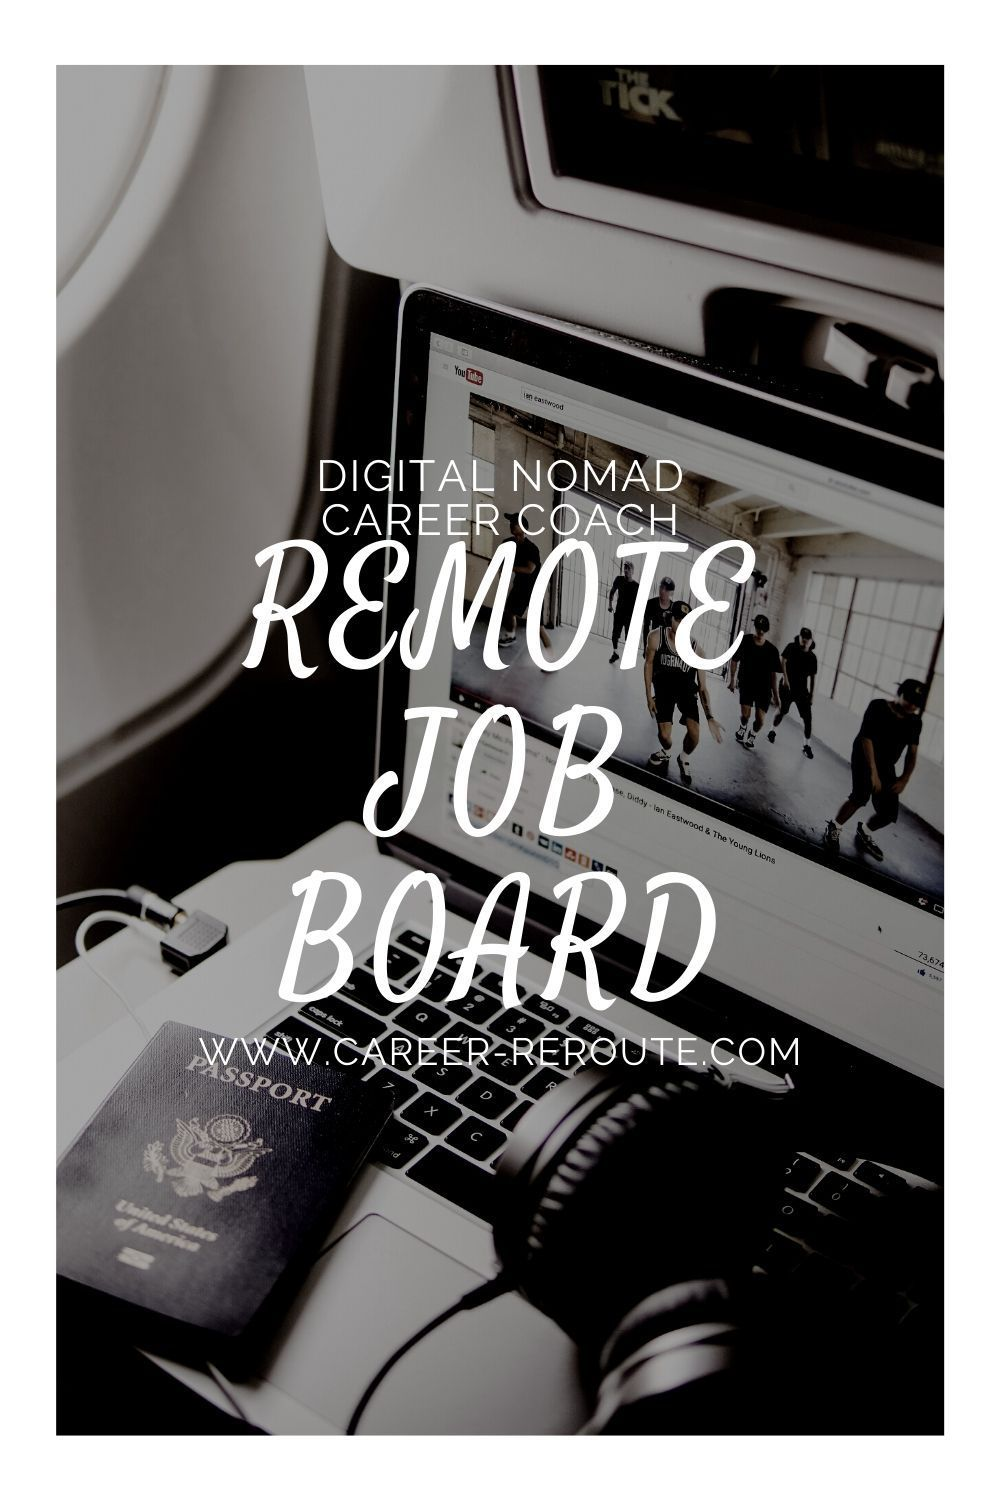 Digital Nomad Jobs Work from home flexible jobs in 2020